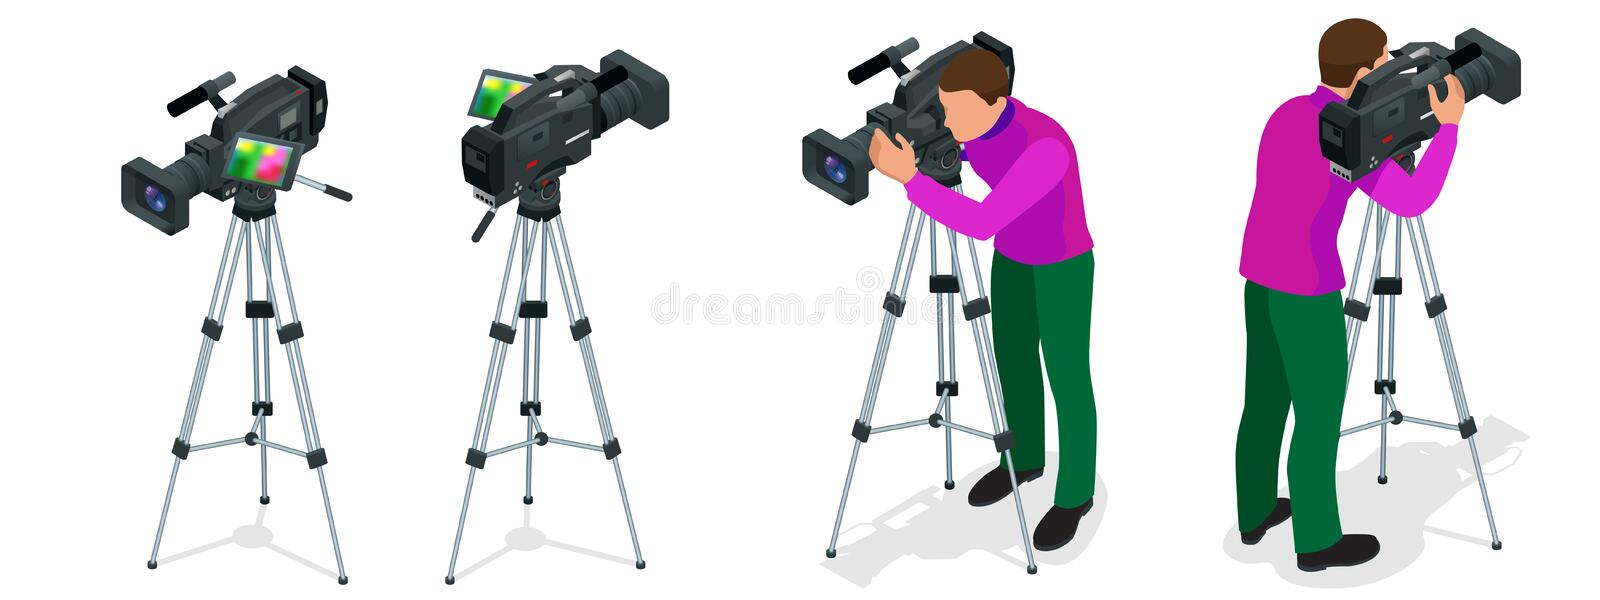 Professional digital video camera and Cameraman. Flat 3d isometric illustration for infographics and design. Camcorders. And Equipment vector illustration